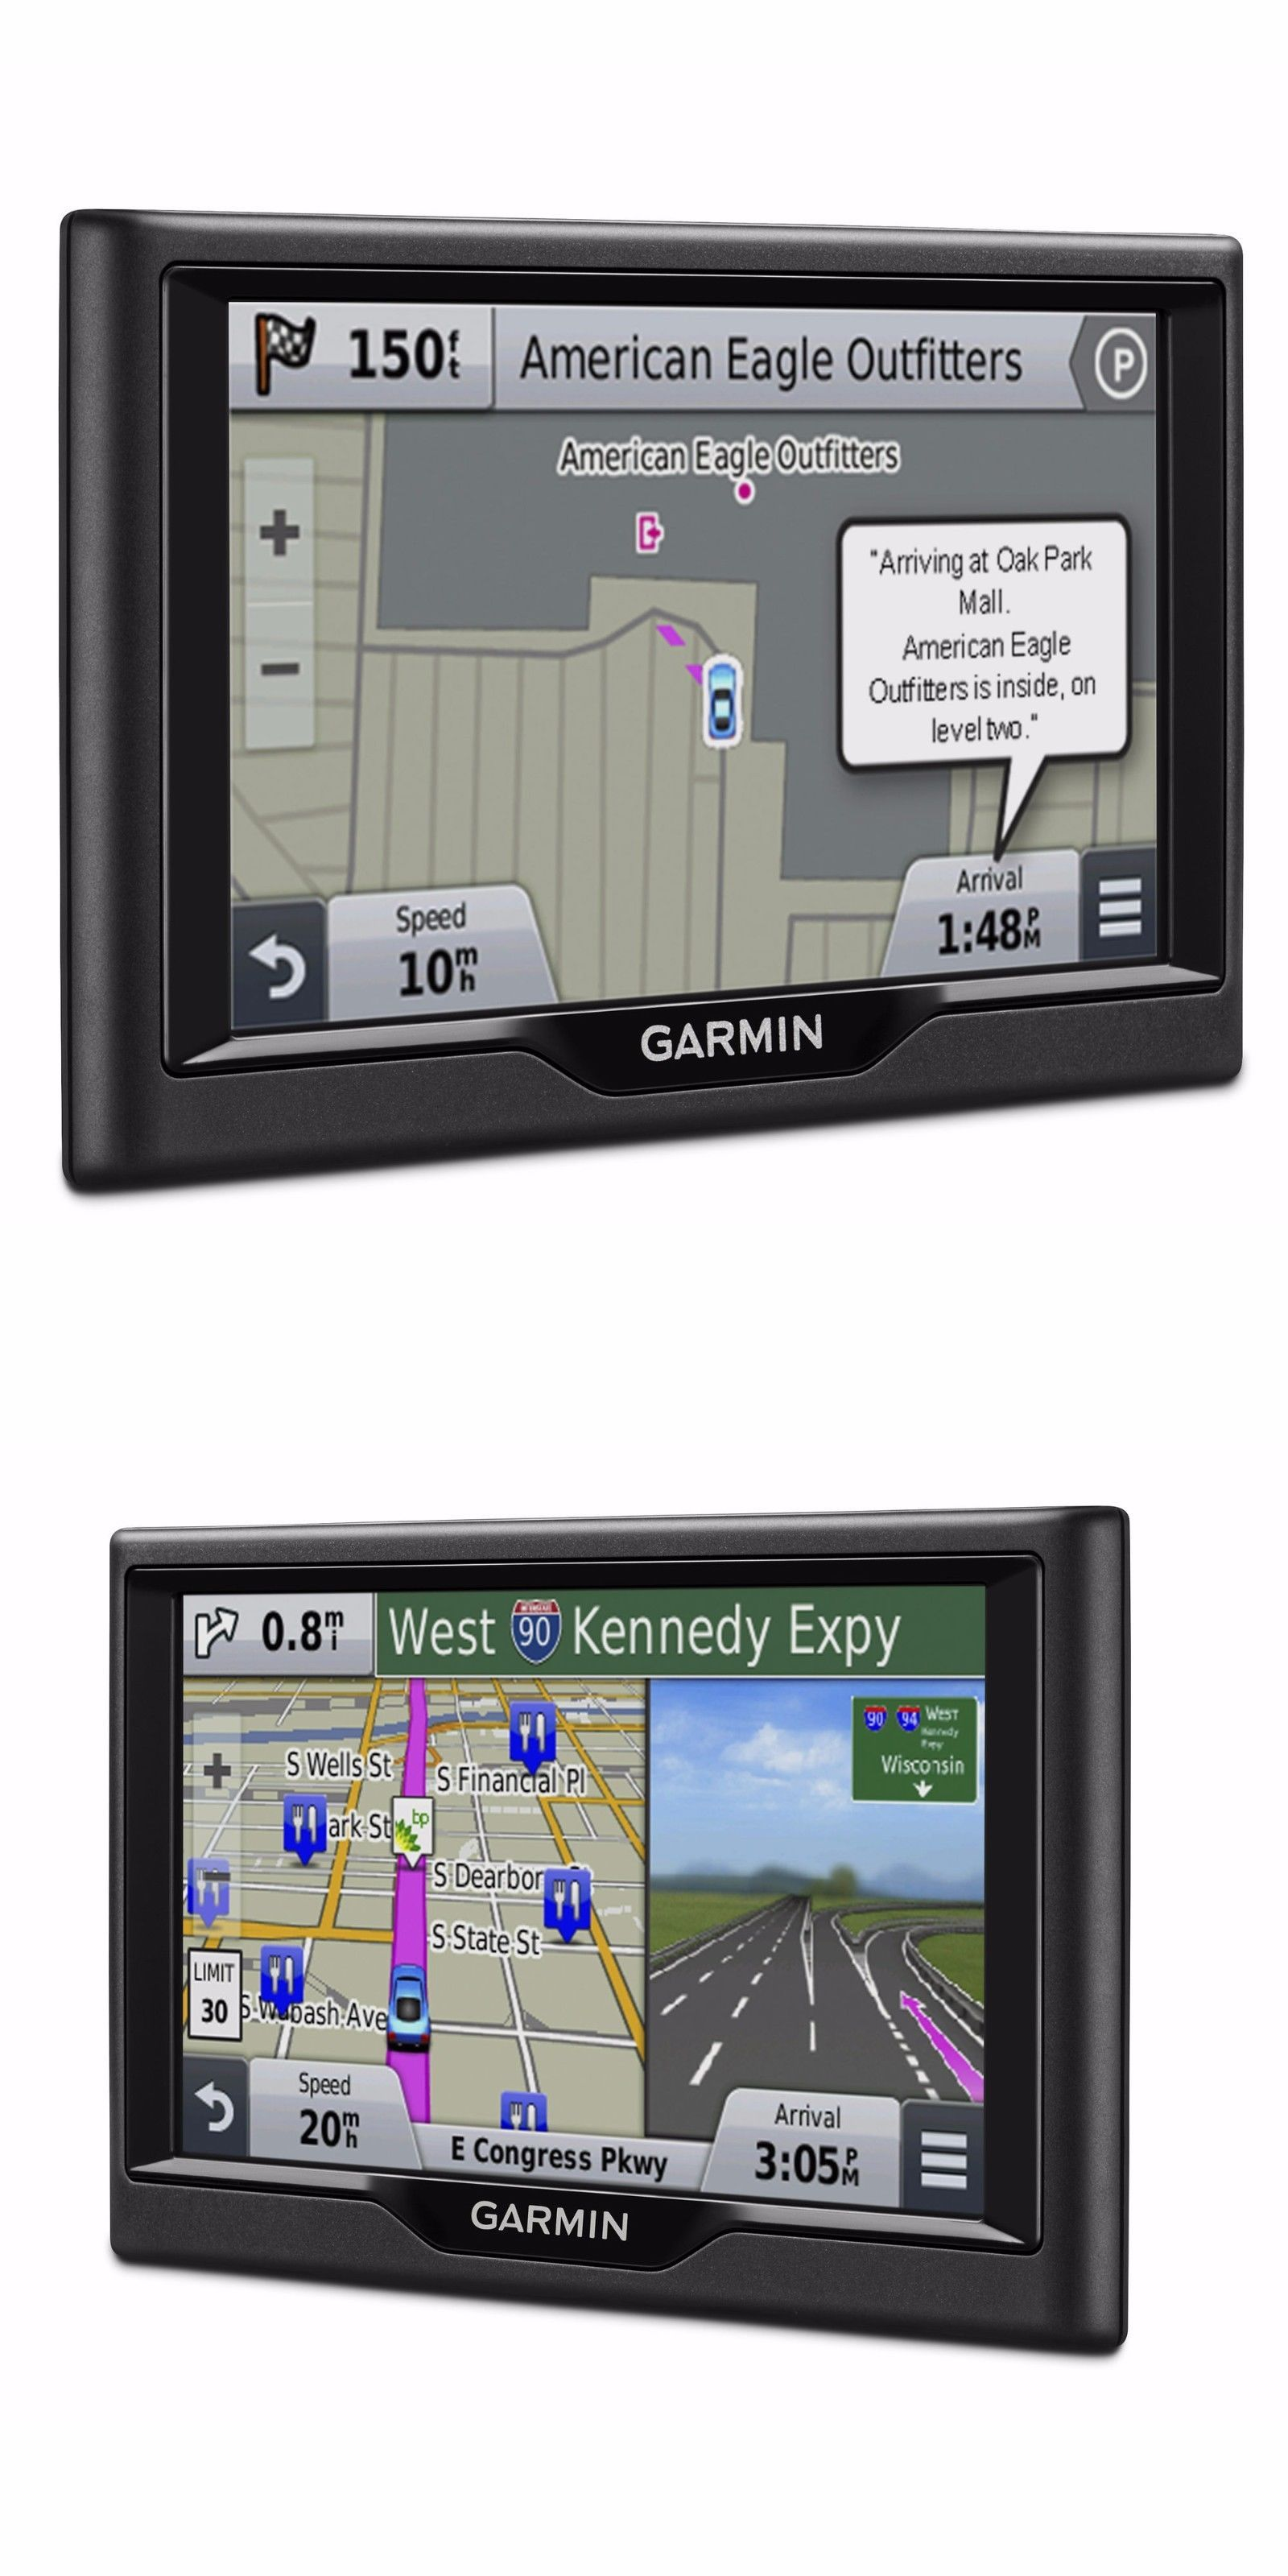 Gps units garmin nuvi 57lm 5 gps navigation system with lifetime map updates